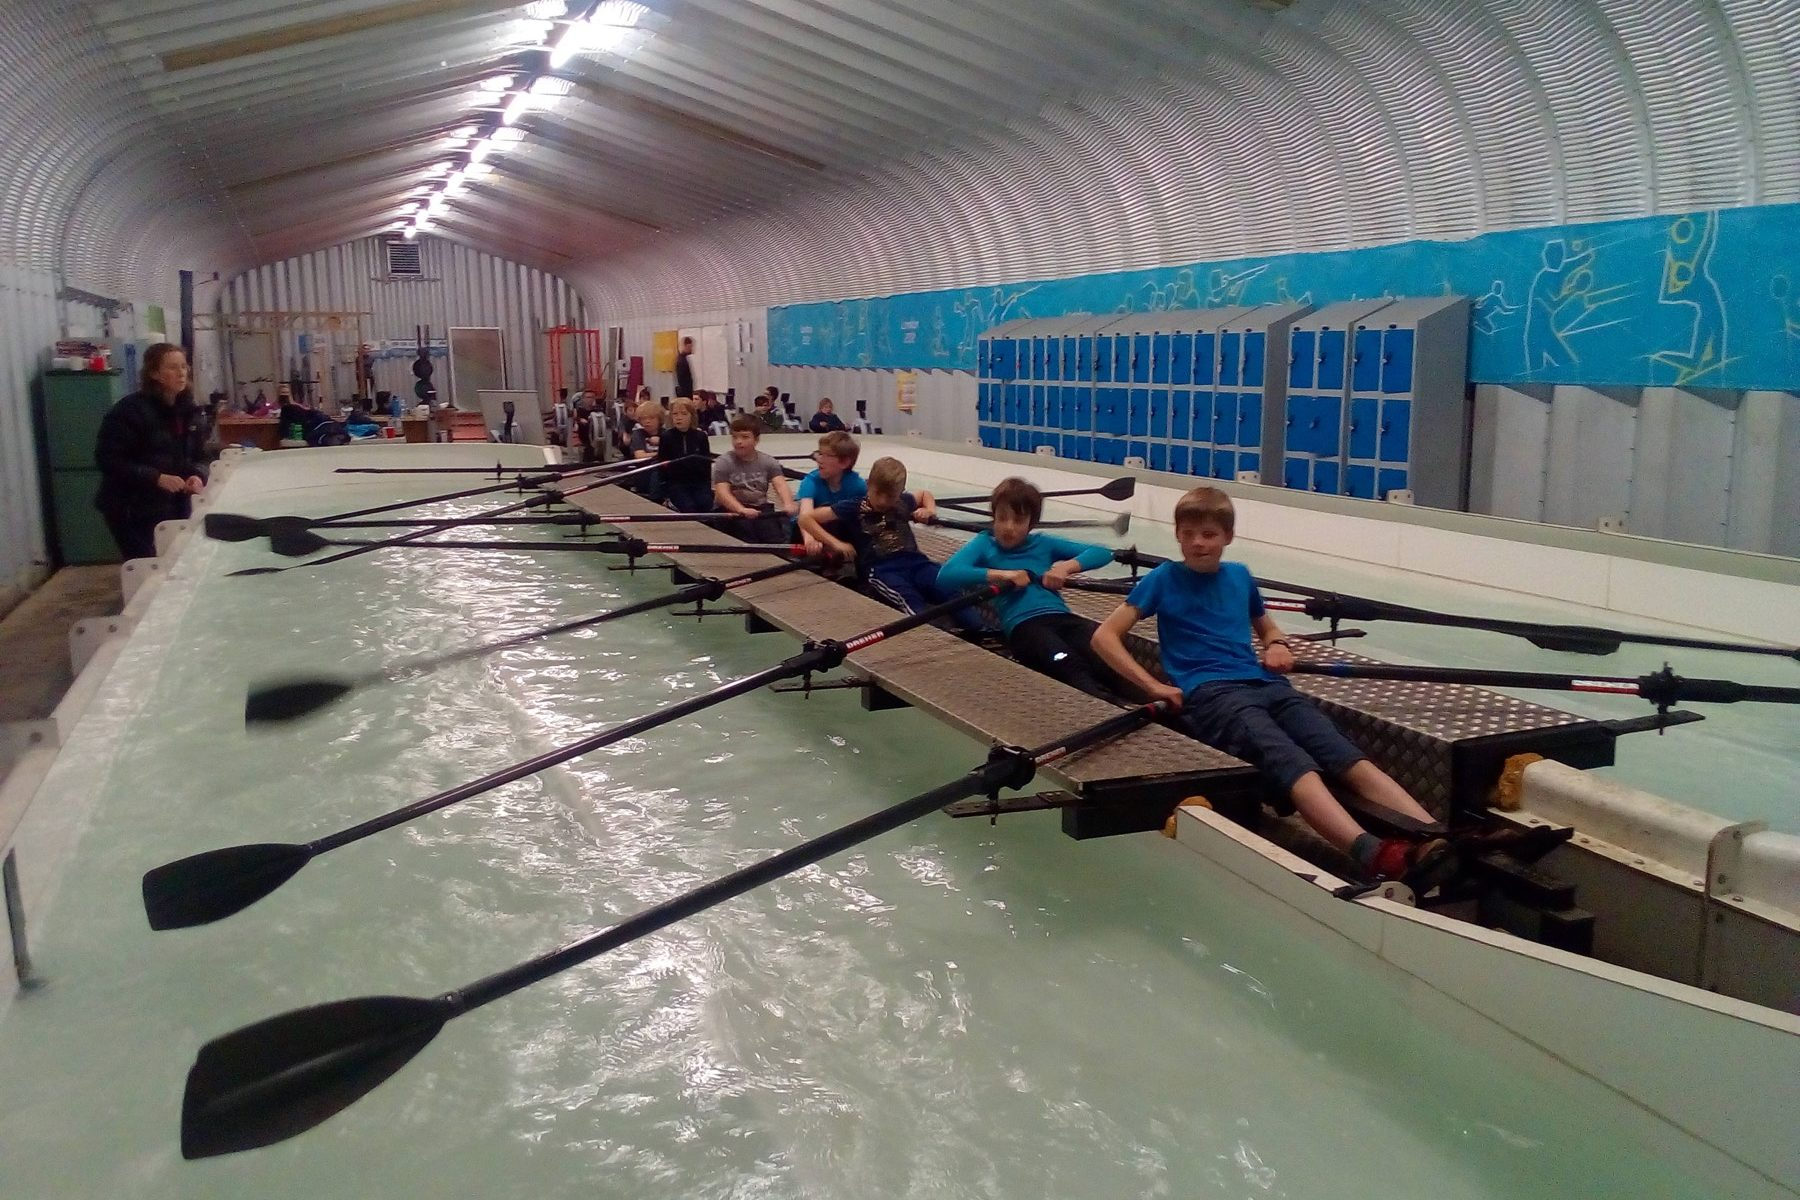 Inside the rowing tank